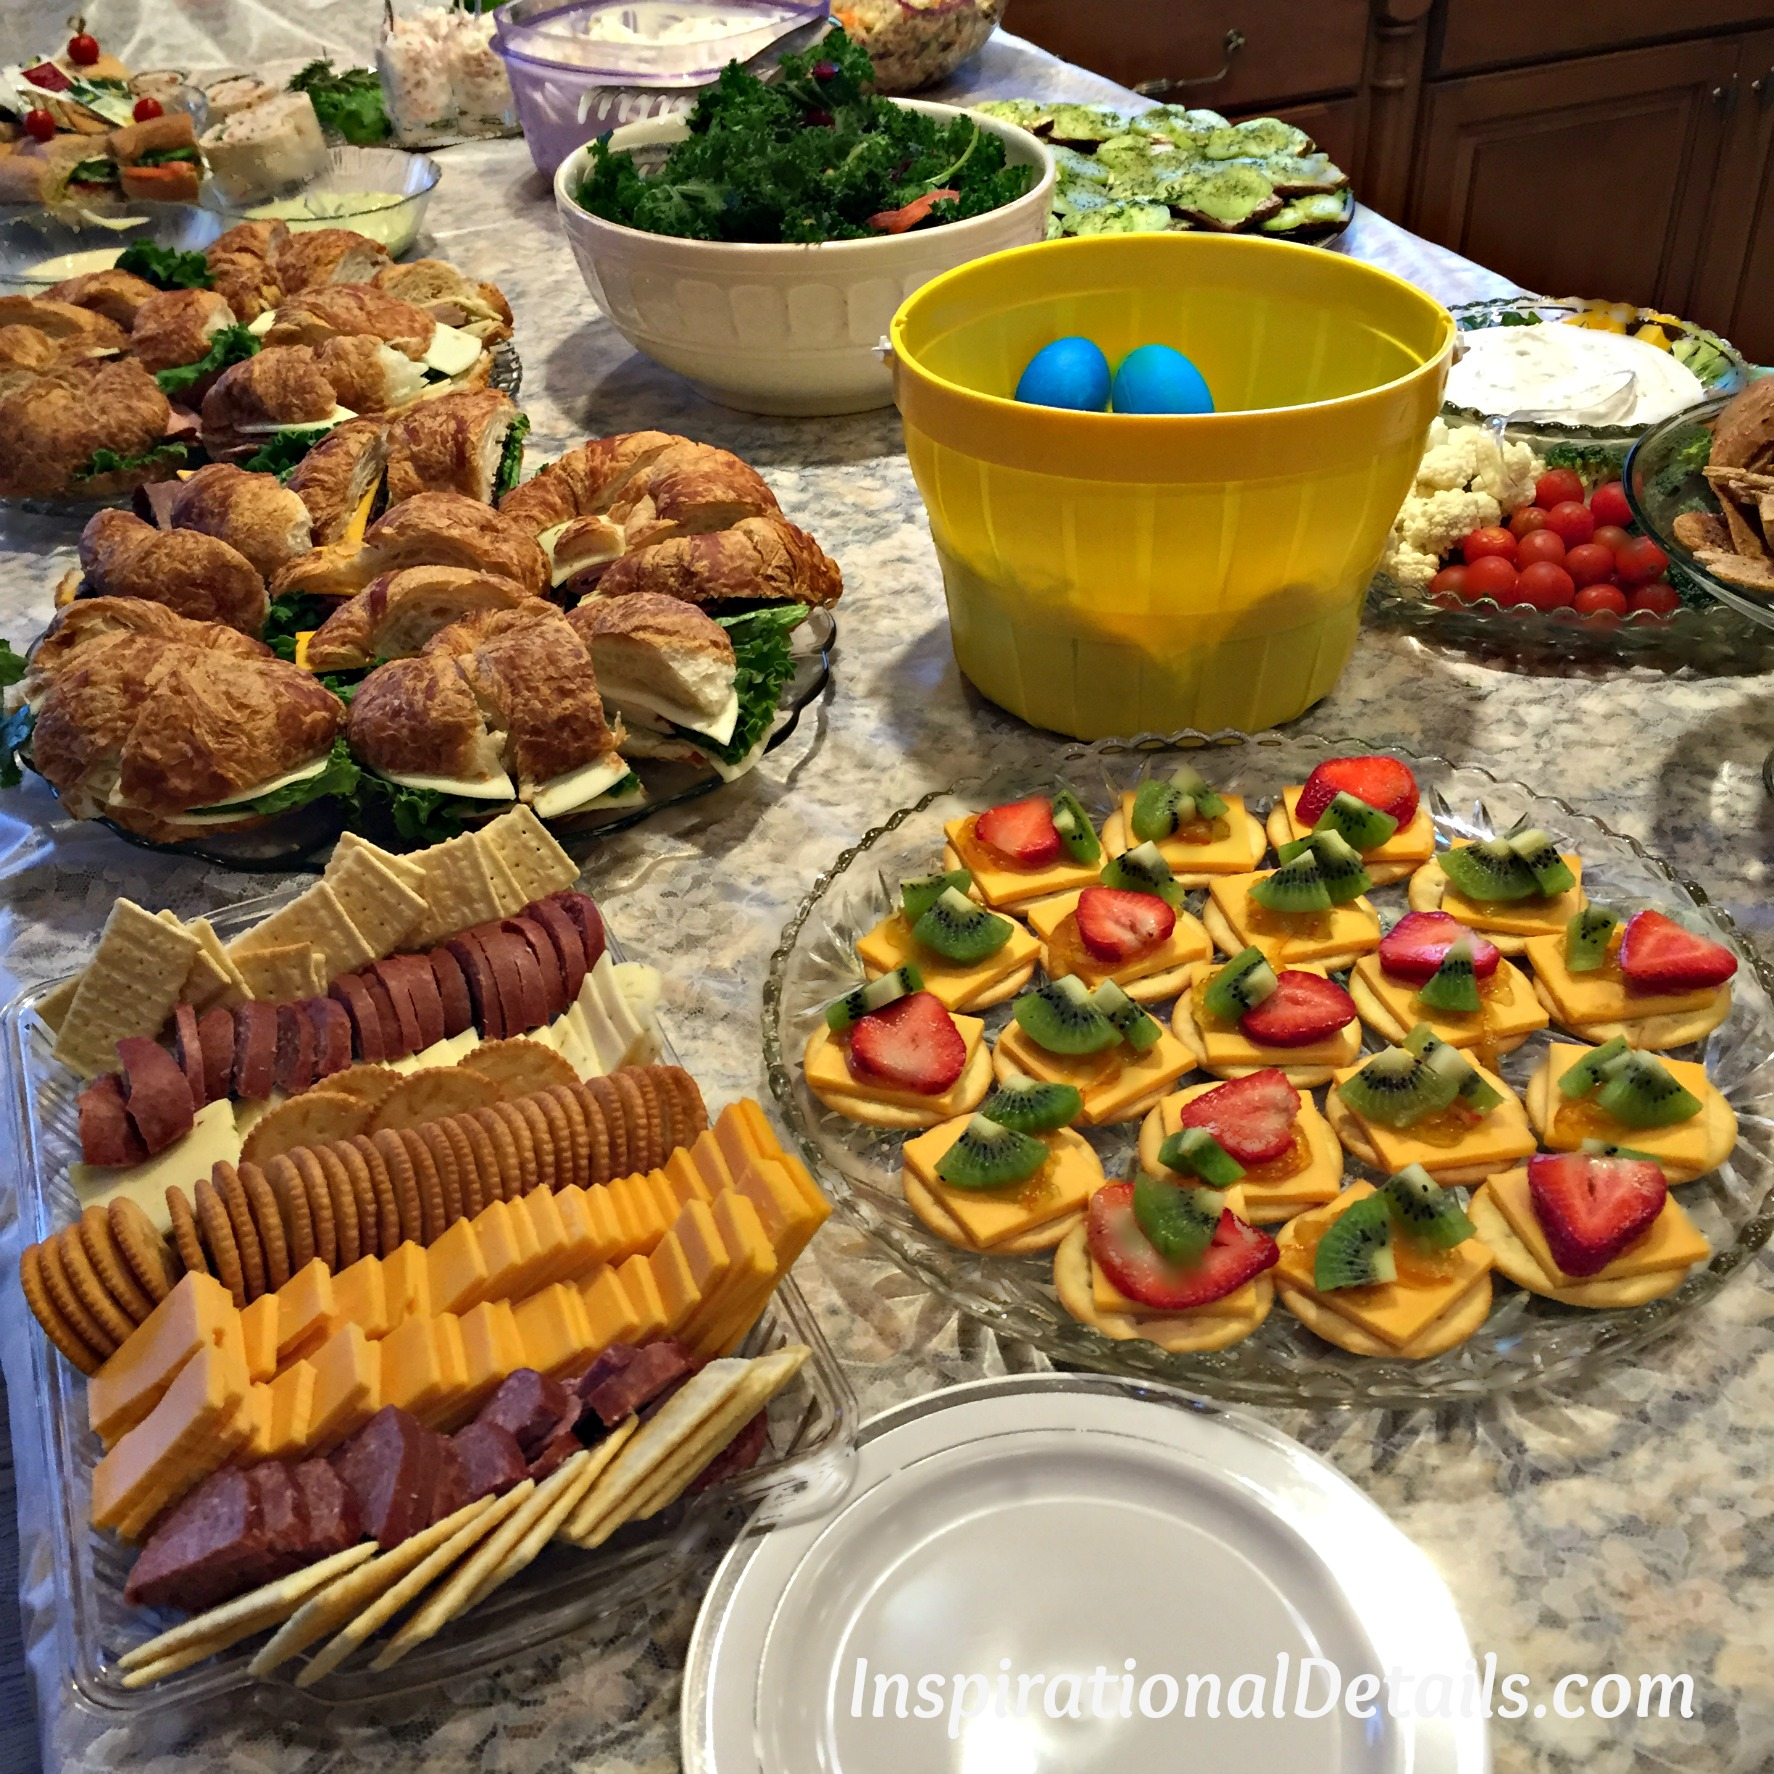 Fullsize Of Bridal Shower Food